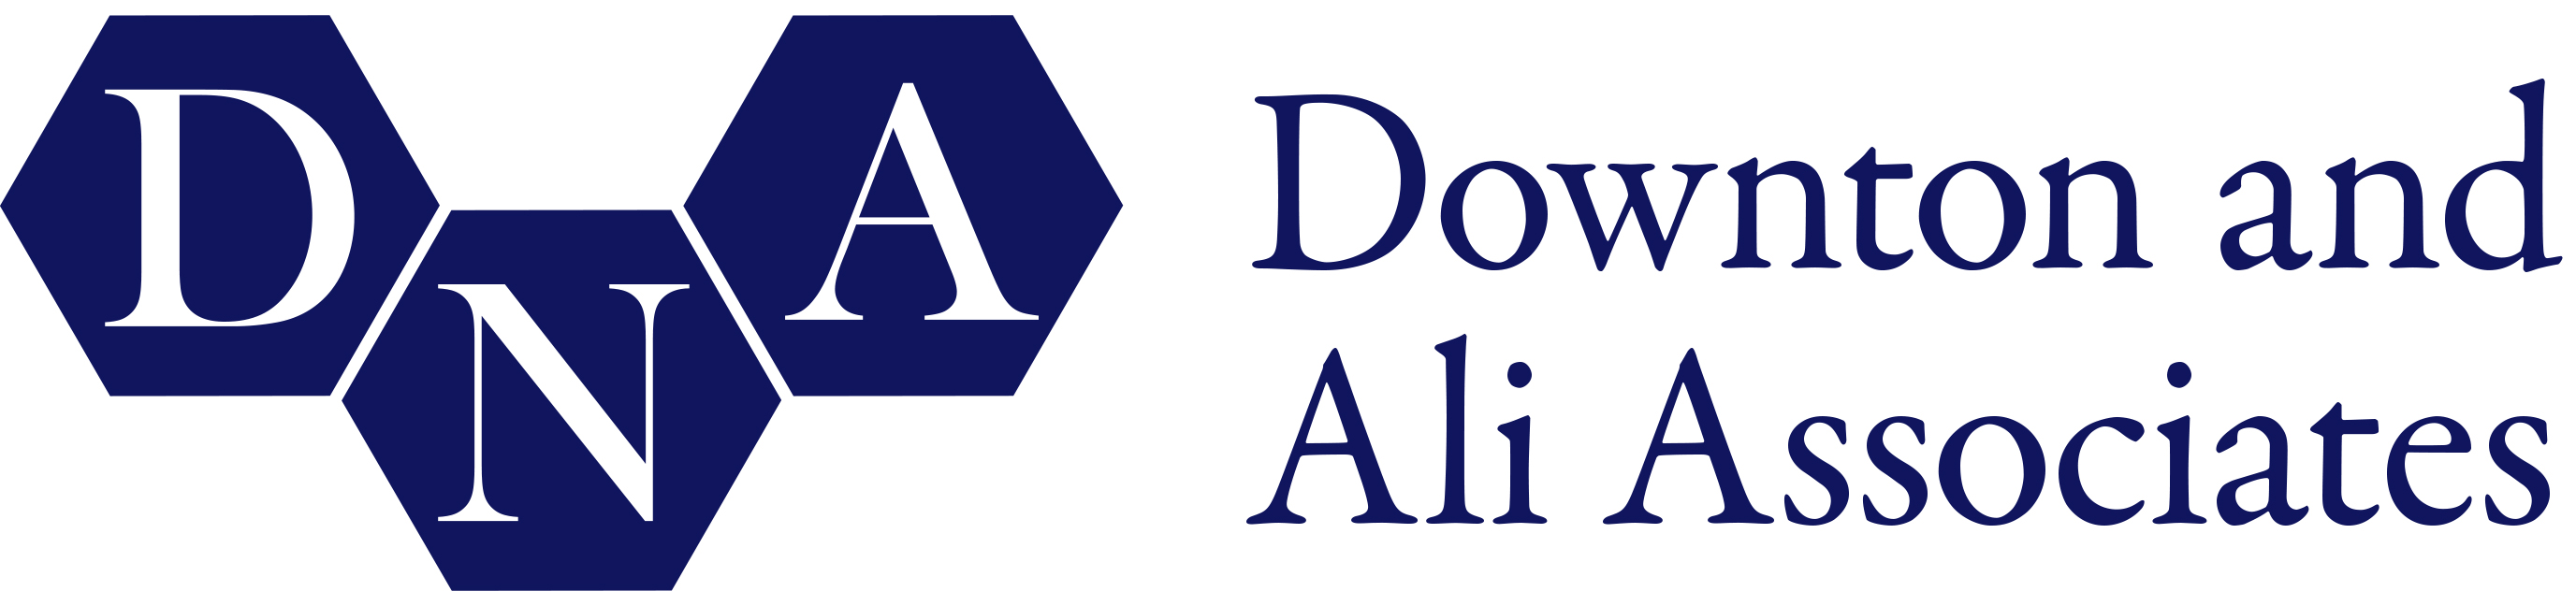 Downton and Ali Associates